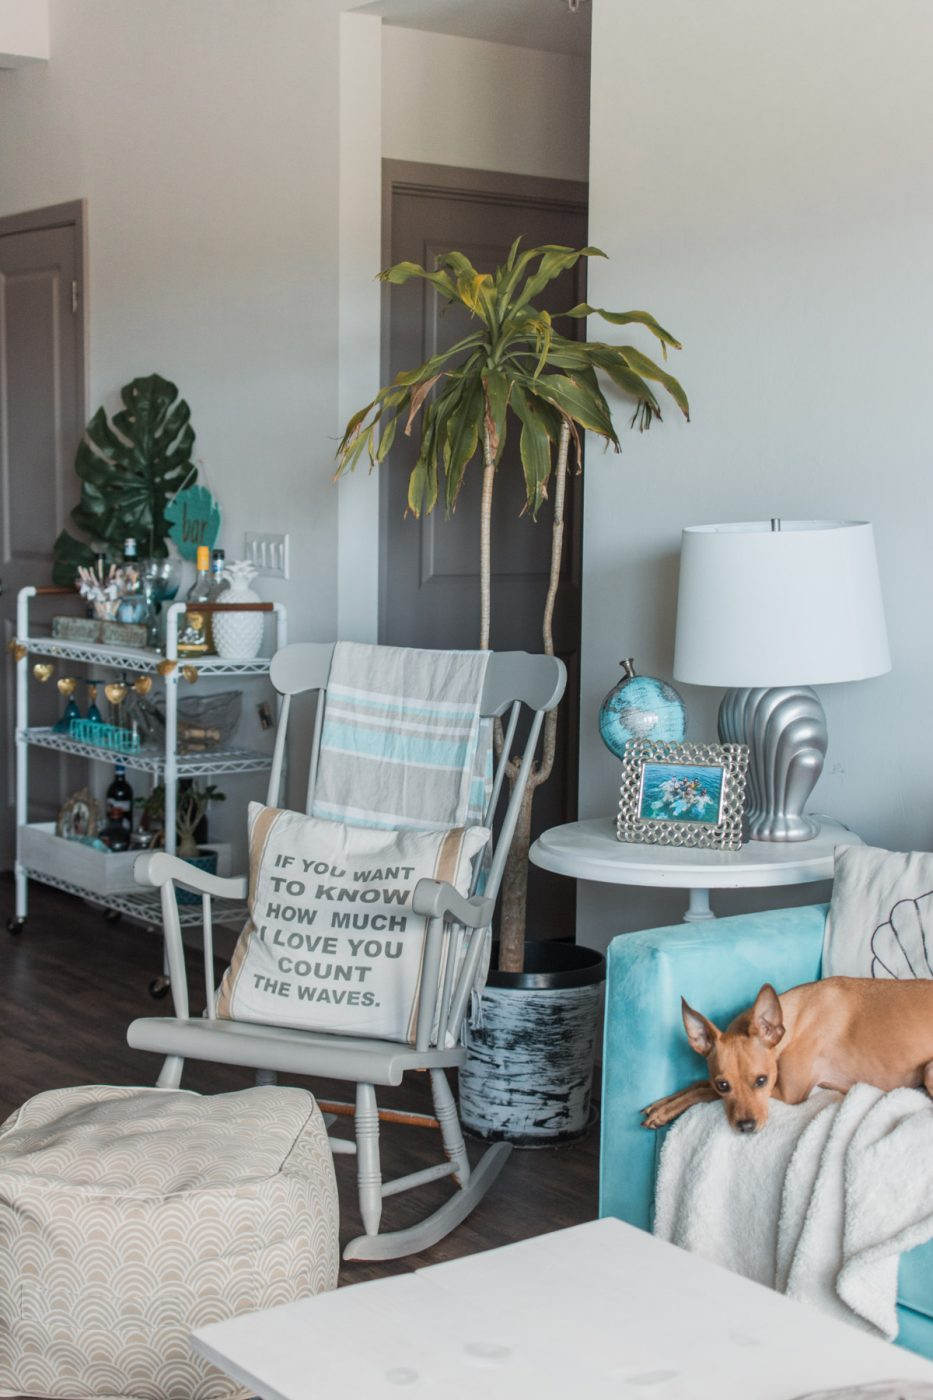 Boho Tropical Living Room with DIY Bar Cart - Sweet Teal